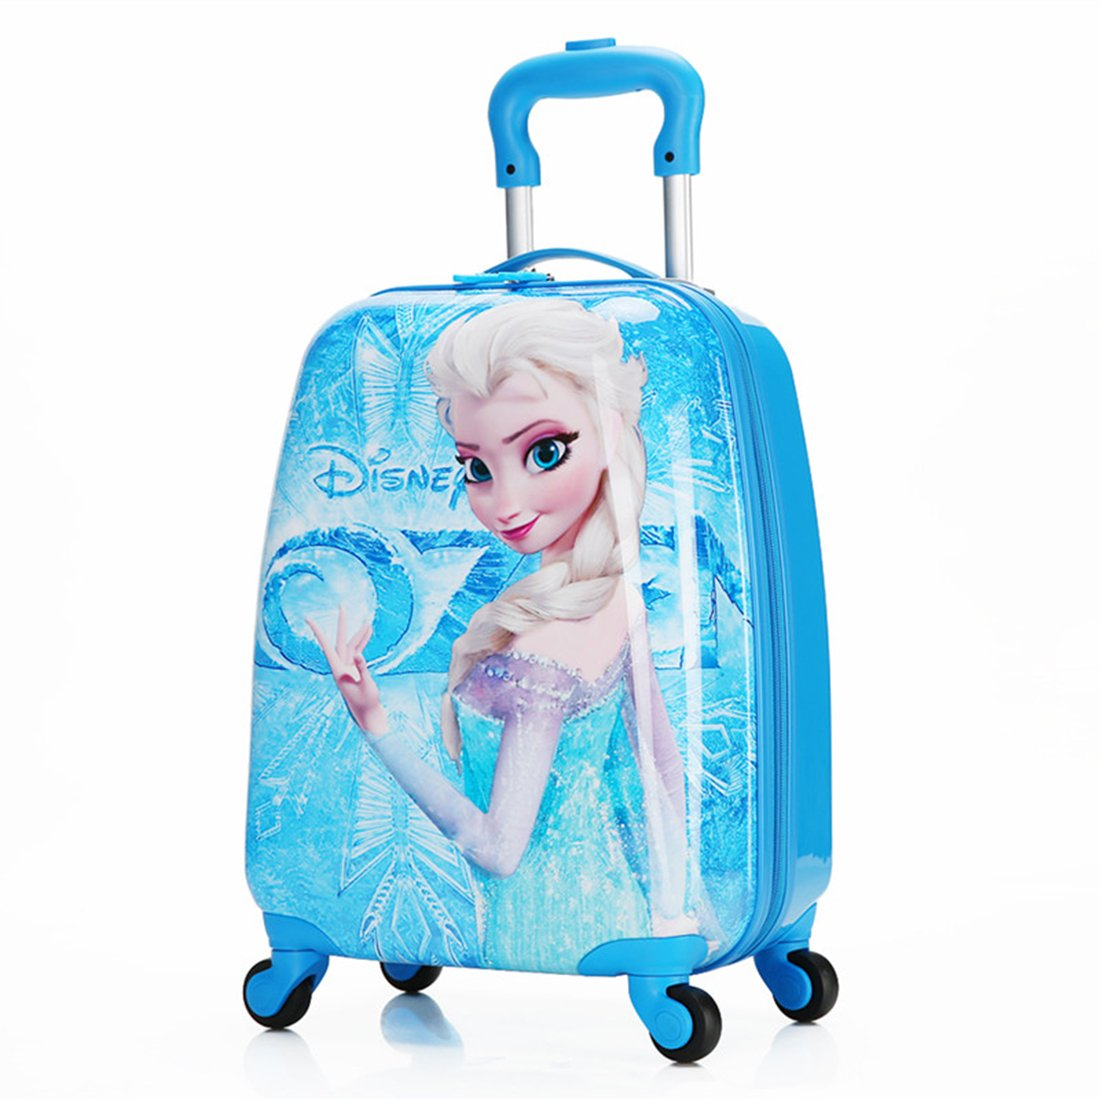 MOREFUN Frozen 18 Inch Luggage Hard Side Spinner Suitcase Carry on Luggage Rolling (Blue princess)